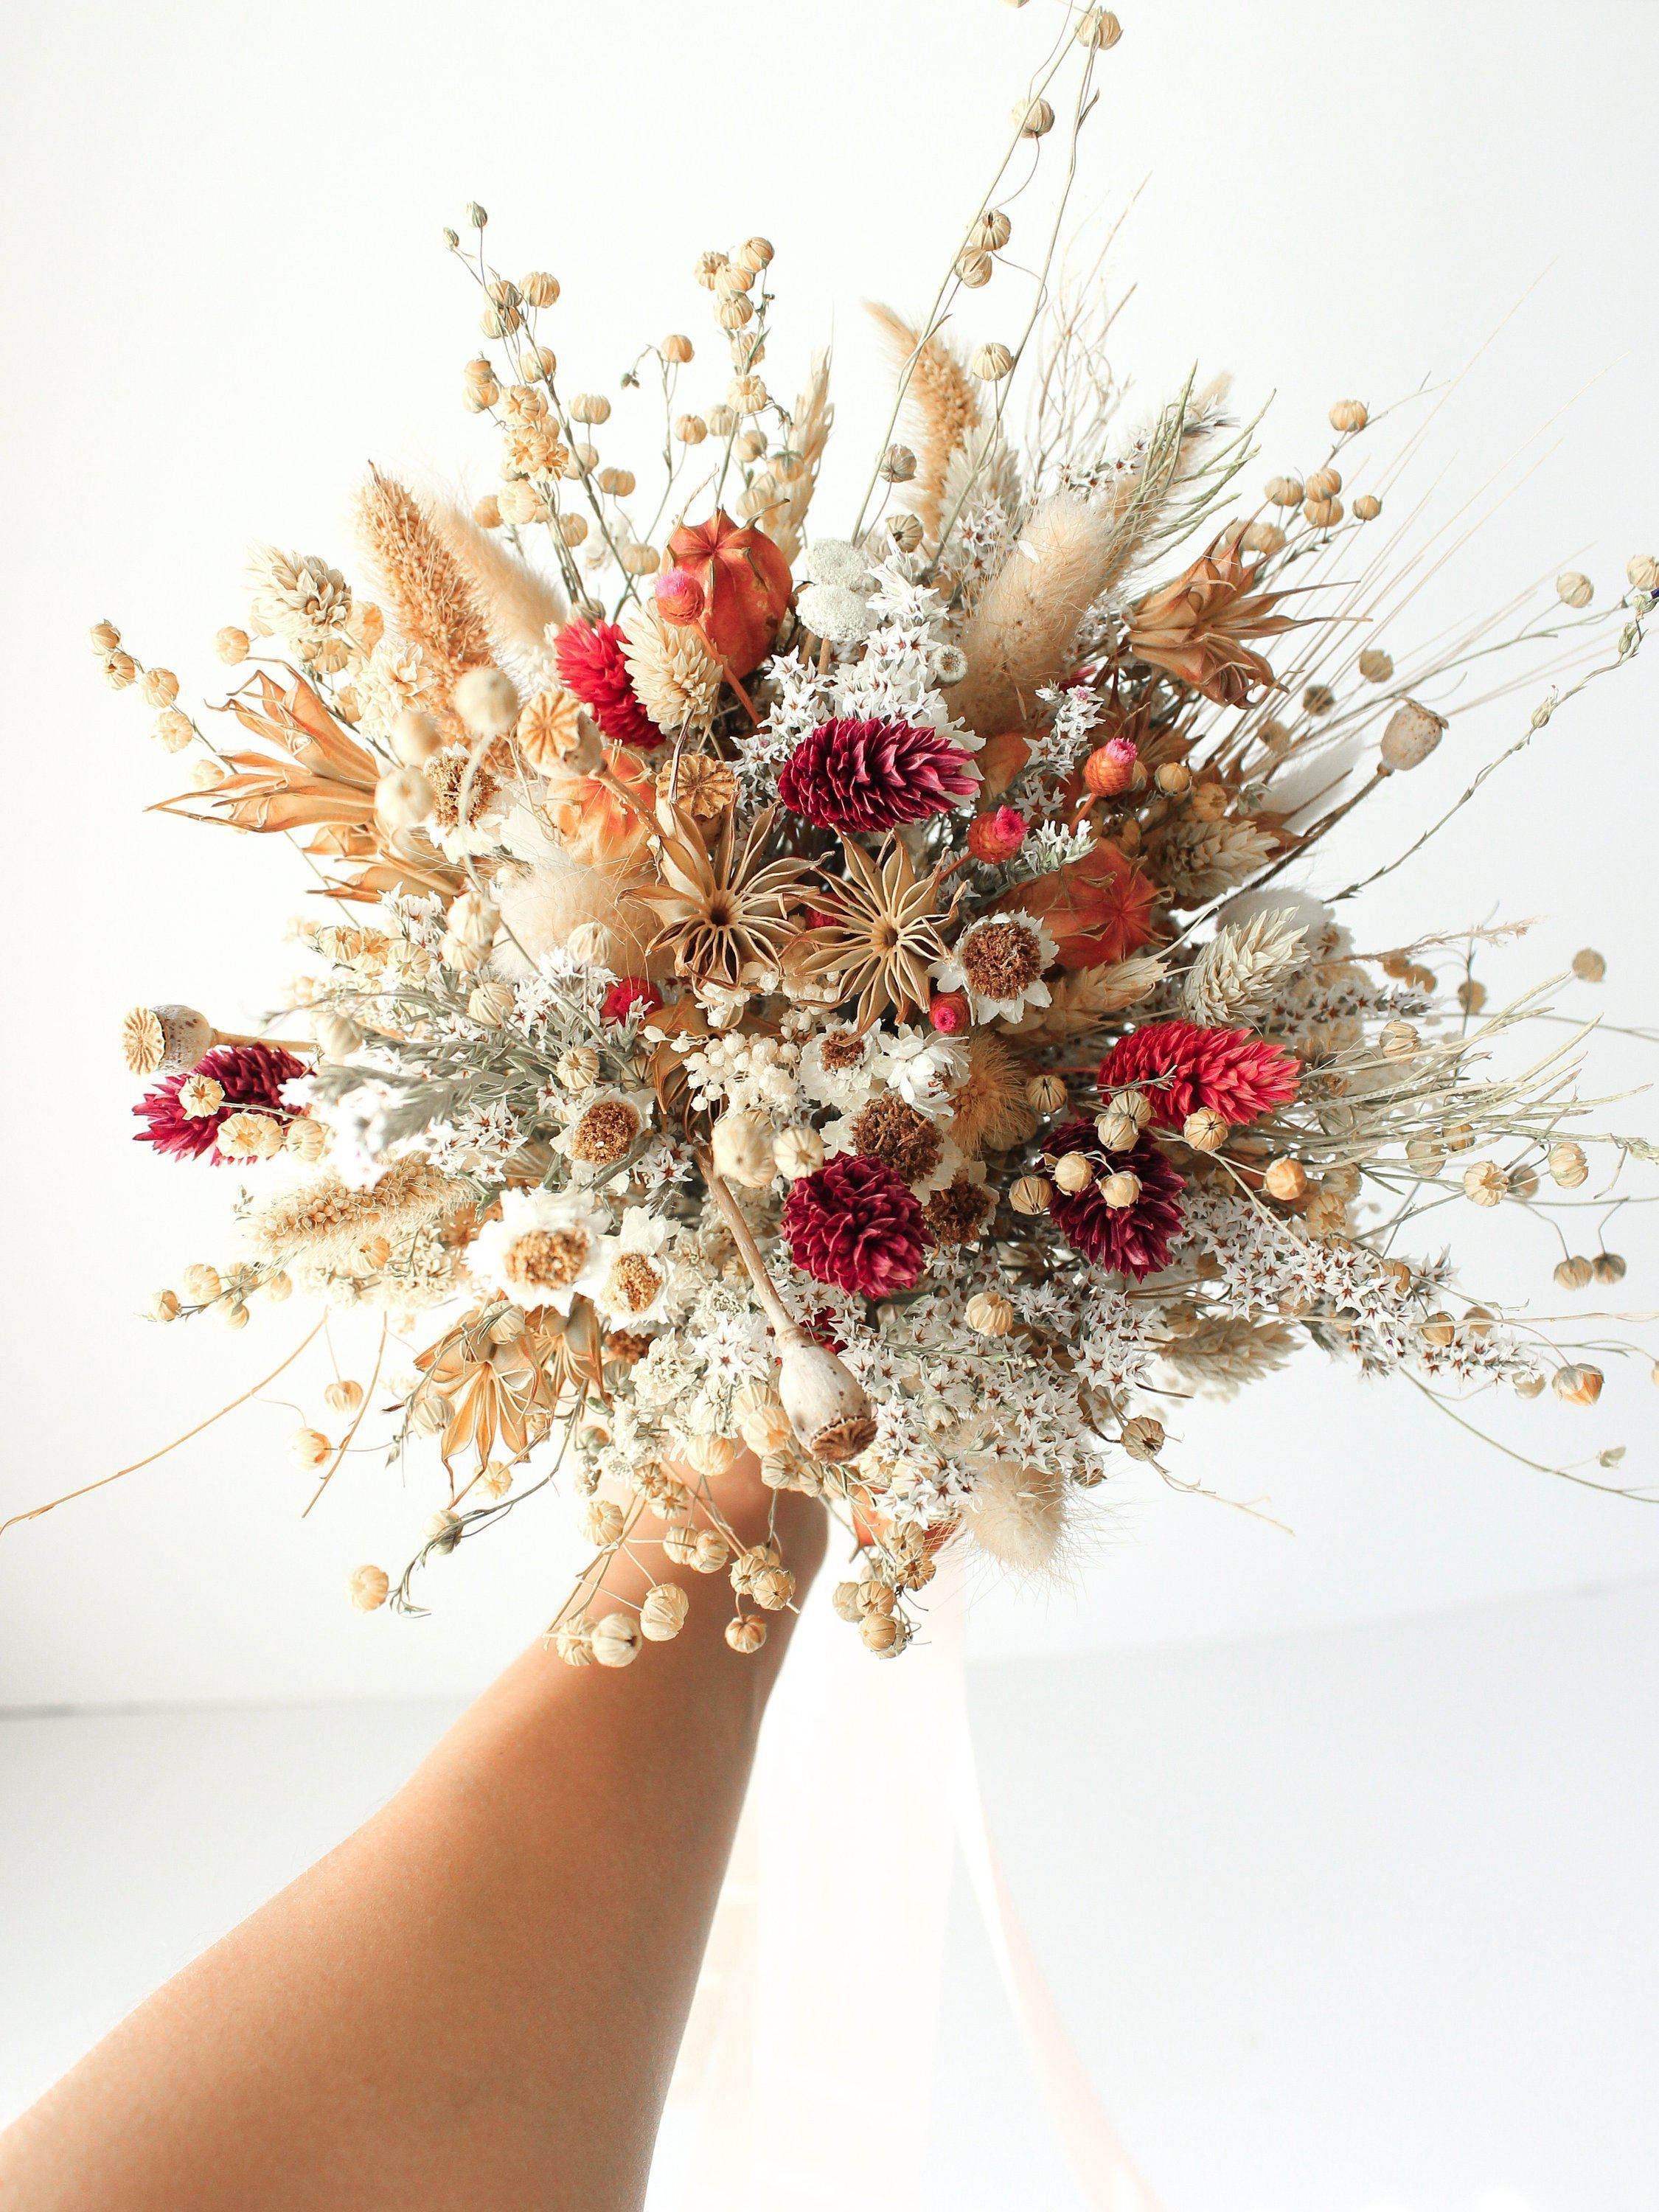 Epingle Par Margaux Santini Sur Bride S Bouquets En 2020